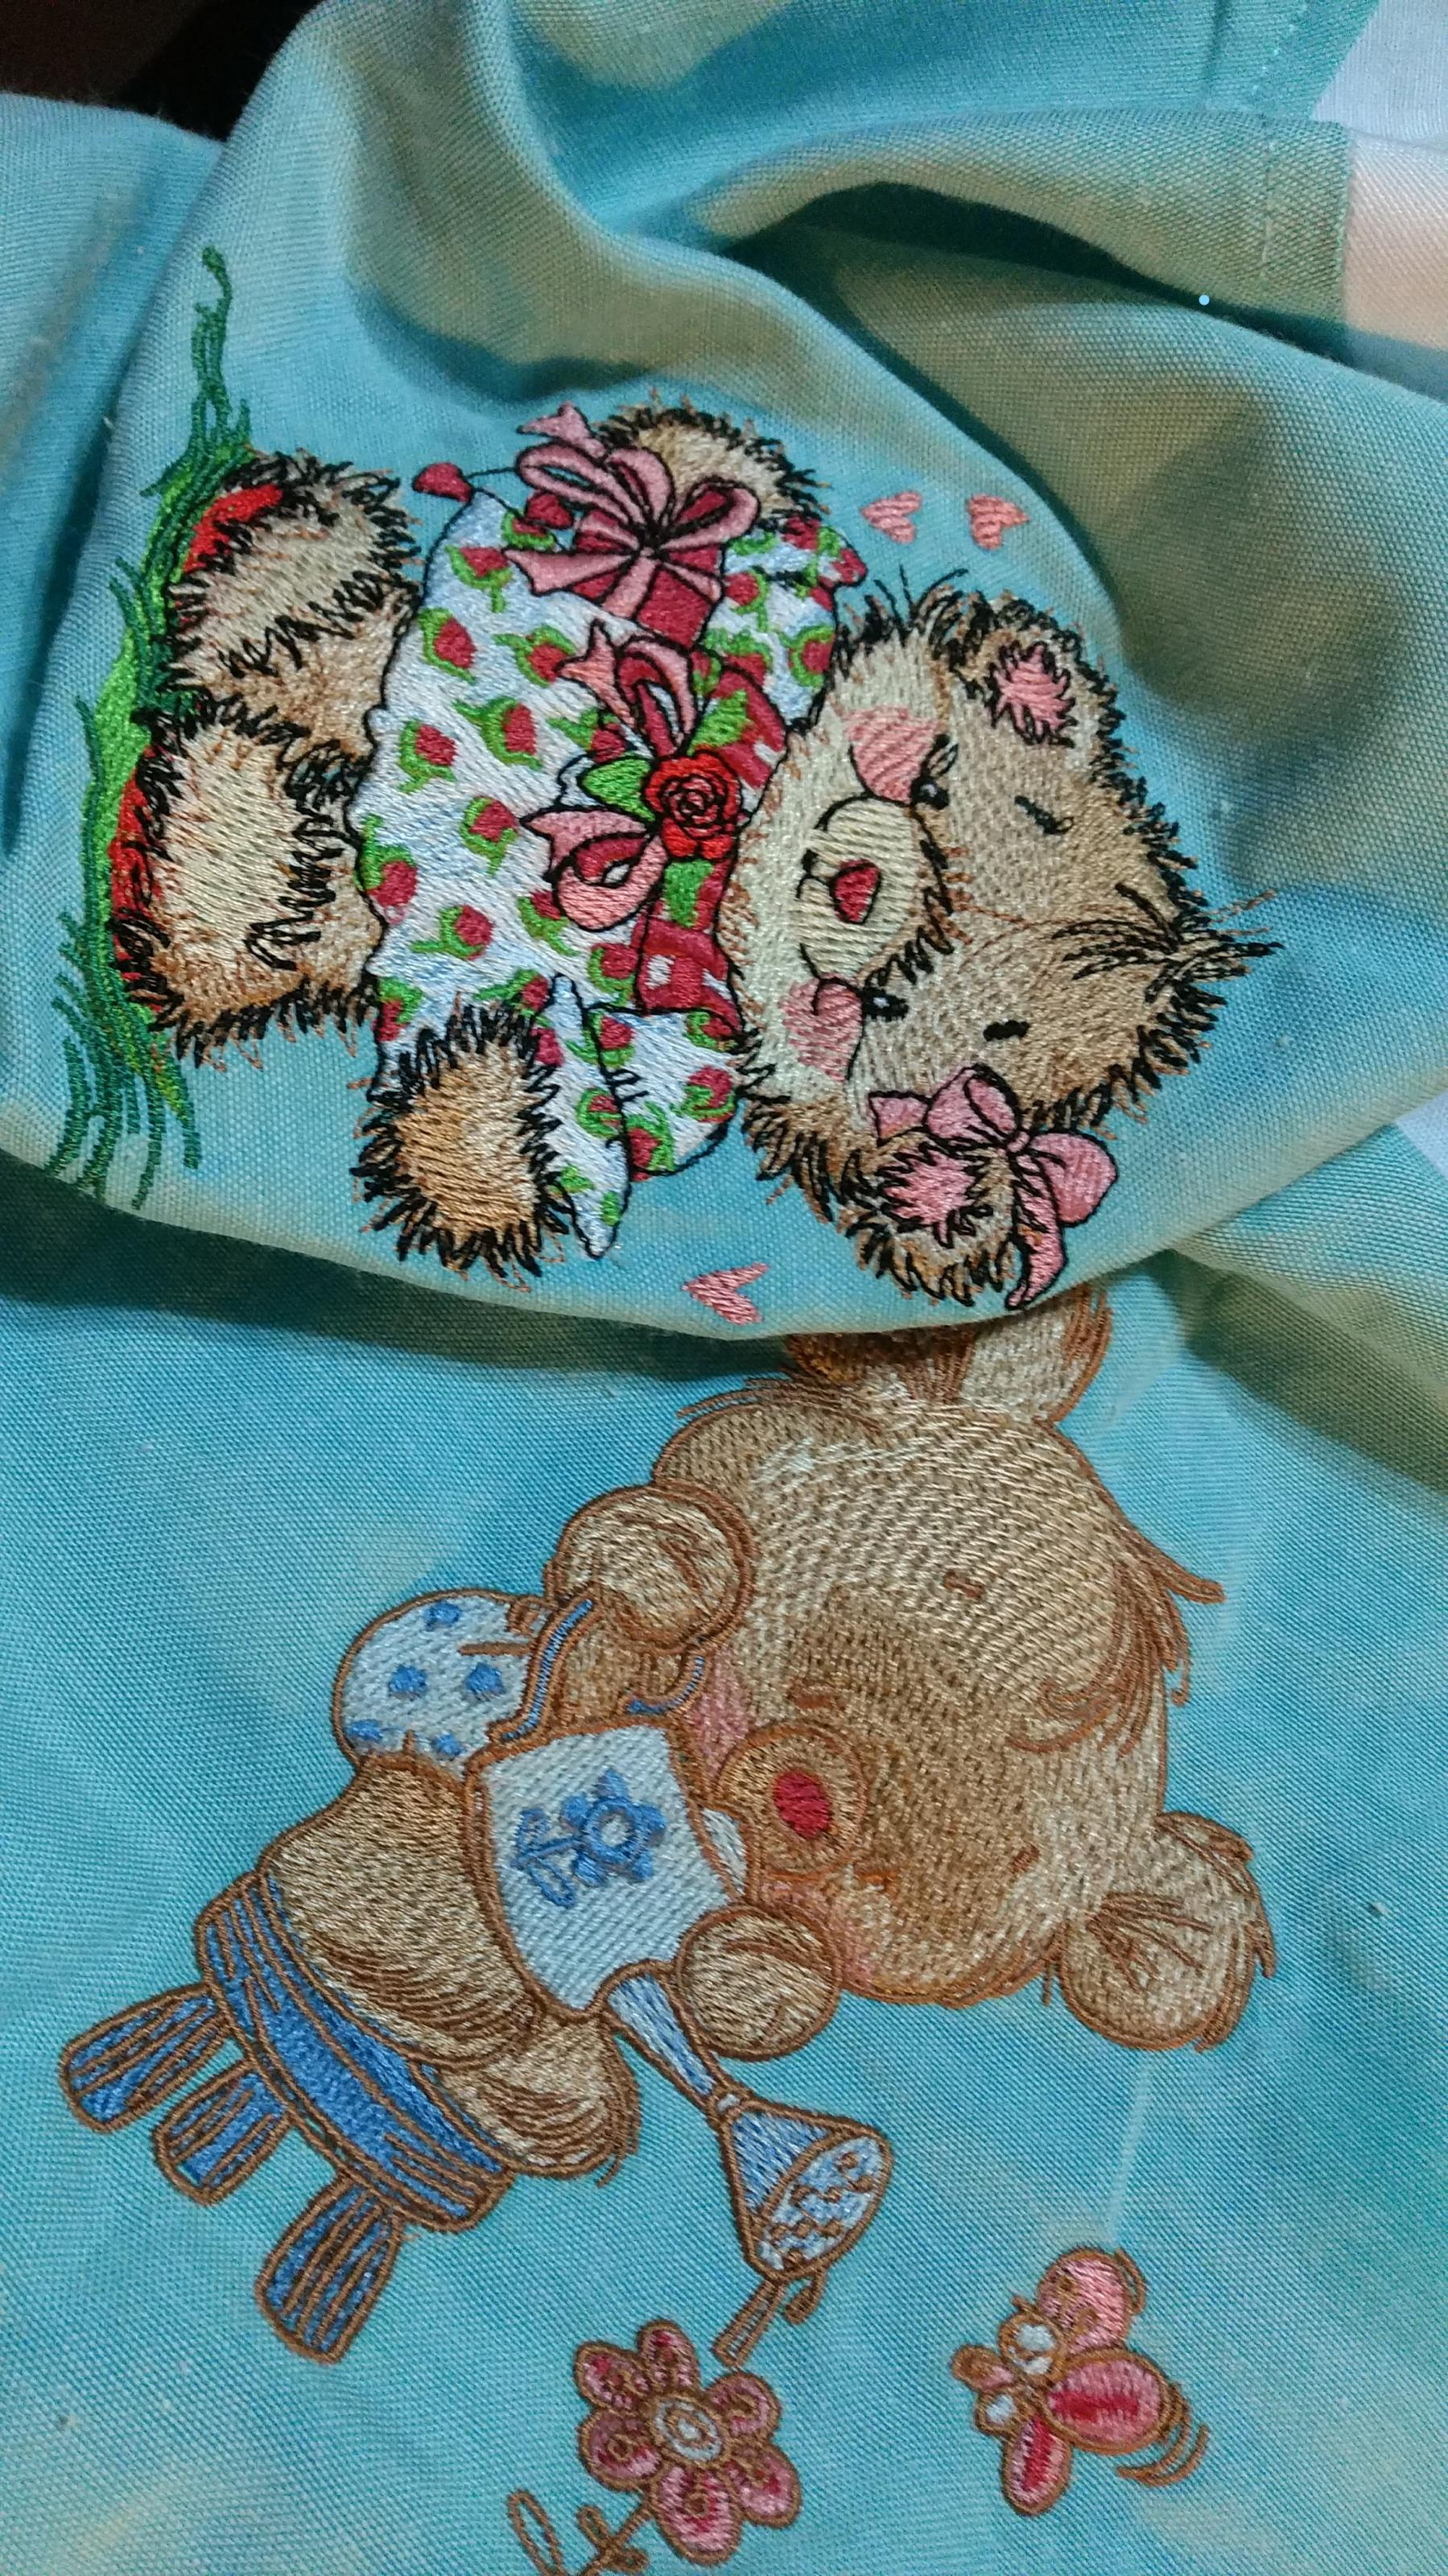 Embroidered serviettes with Teddy bear designs